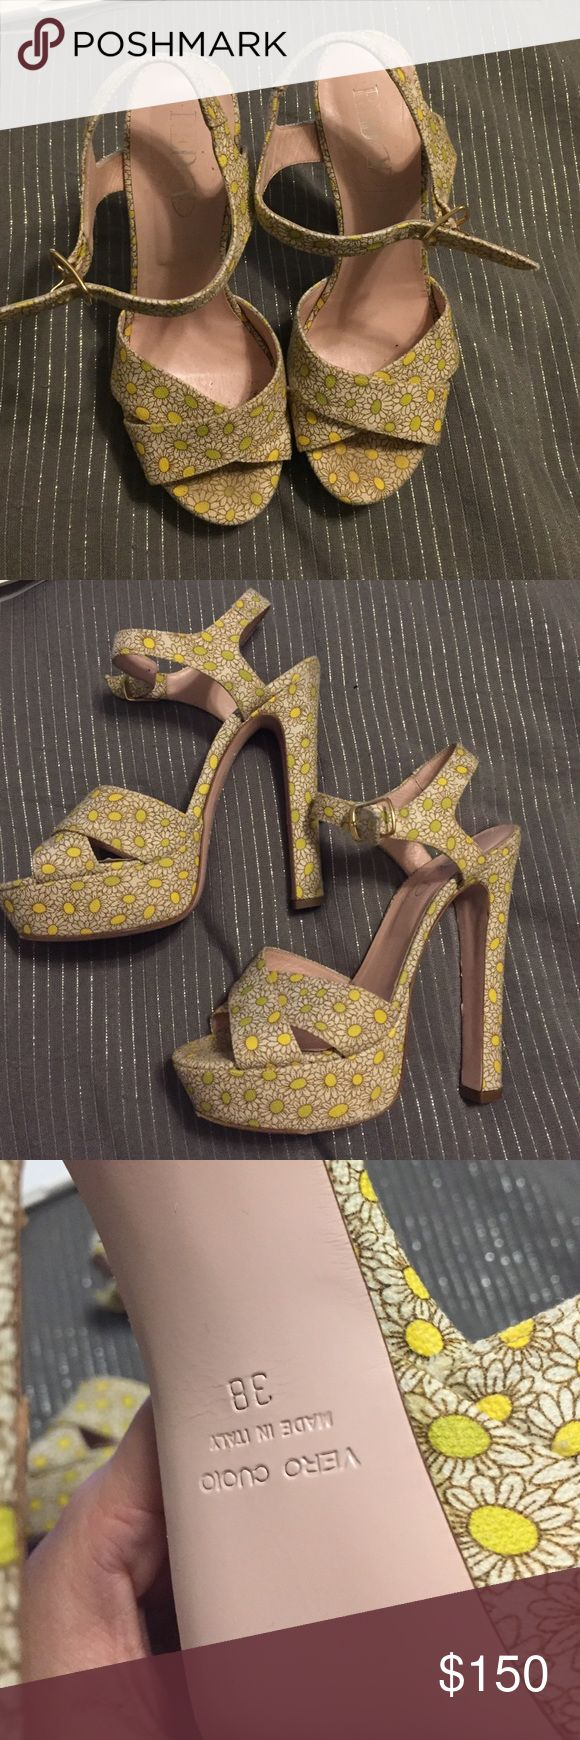 Red Valentino daisy shoes sz 38 Used but excellent condition. Super cute. Hidden platform makes them easier to walk in. Fabulous! Valentino Shoes